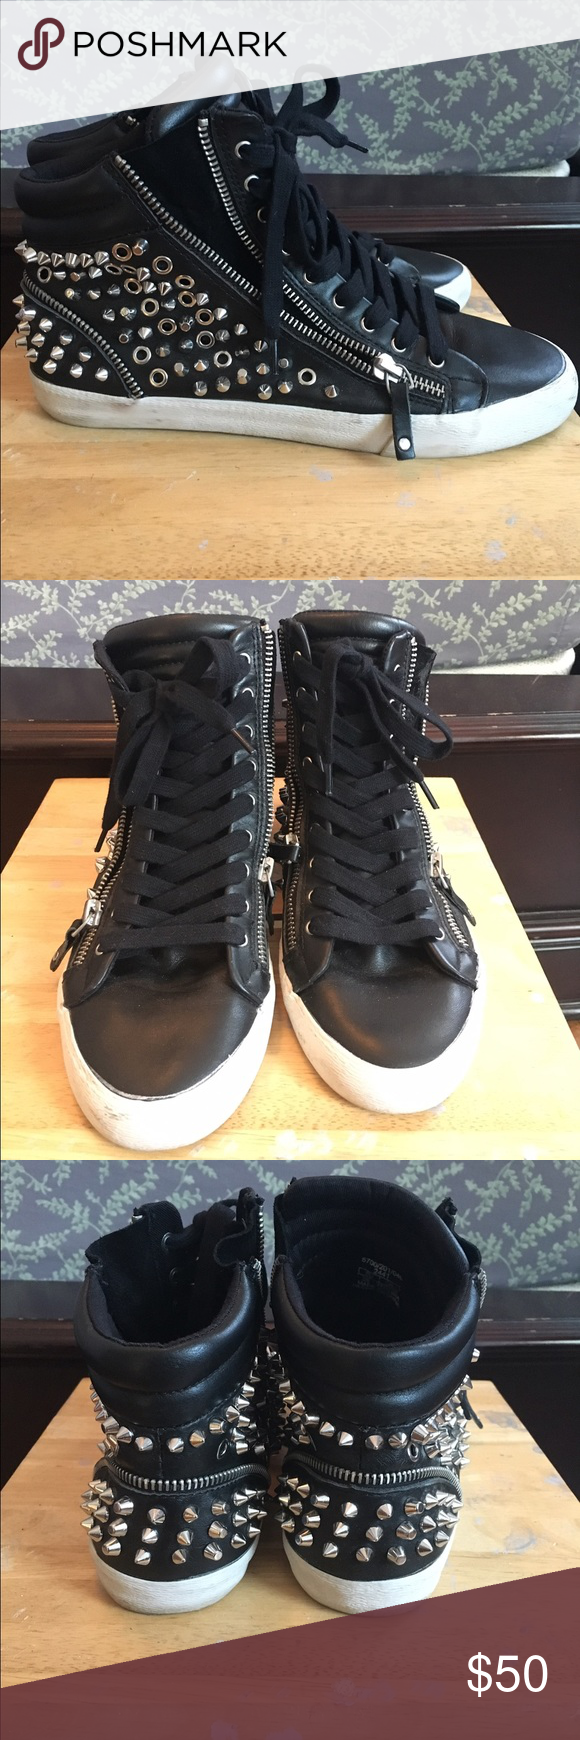 ZARA Black Genuine Leather Hi-Top Studded Sneakers Black leather sneakers. Silver studded design. All studs intact. Zipper on each side of each shoe, can adjust. White soles. Worn only a few times. ZARA 38 Zara Shoes Sneakers